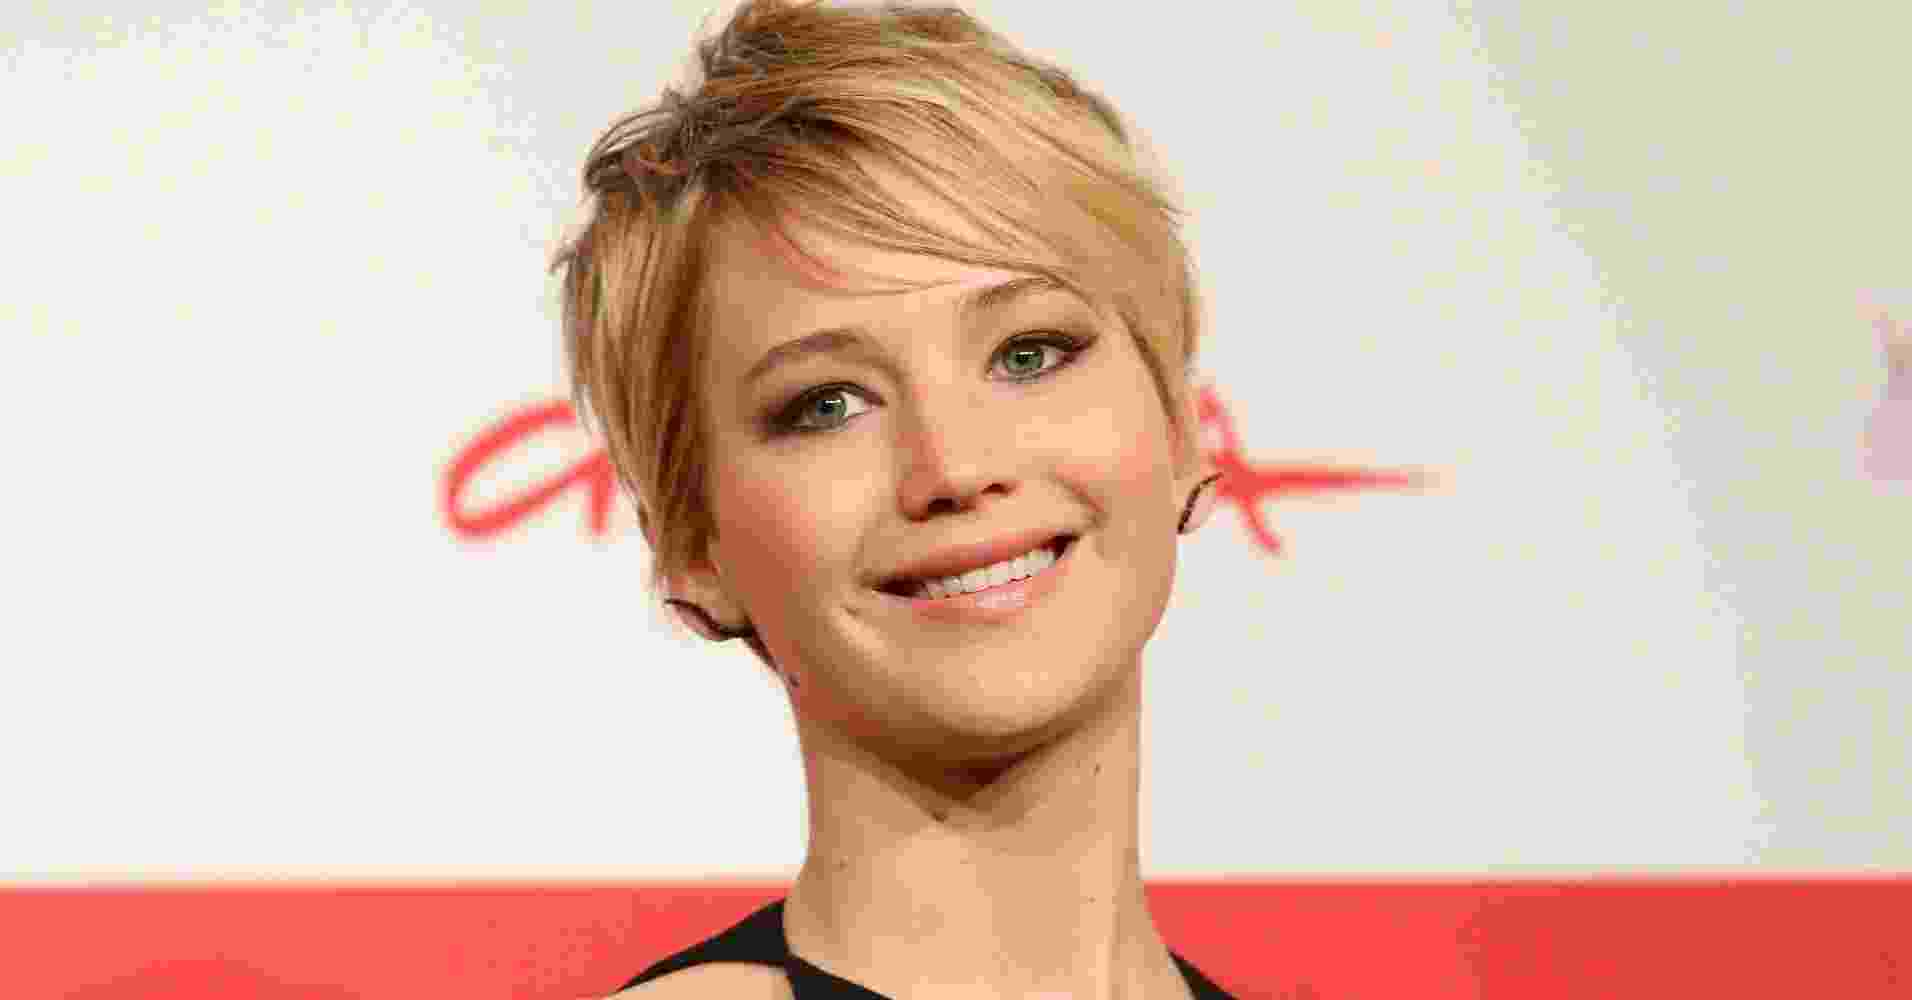 Look Jennifer Lawrence - Getty Images